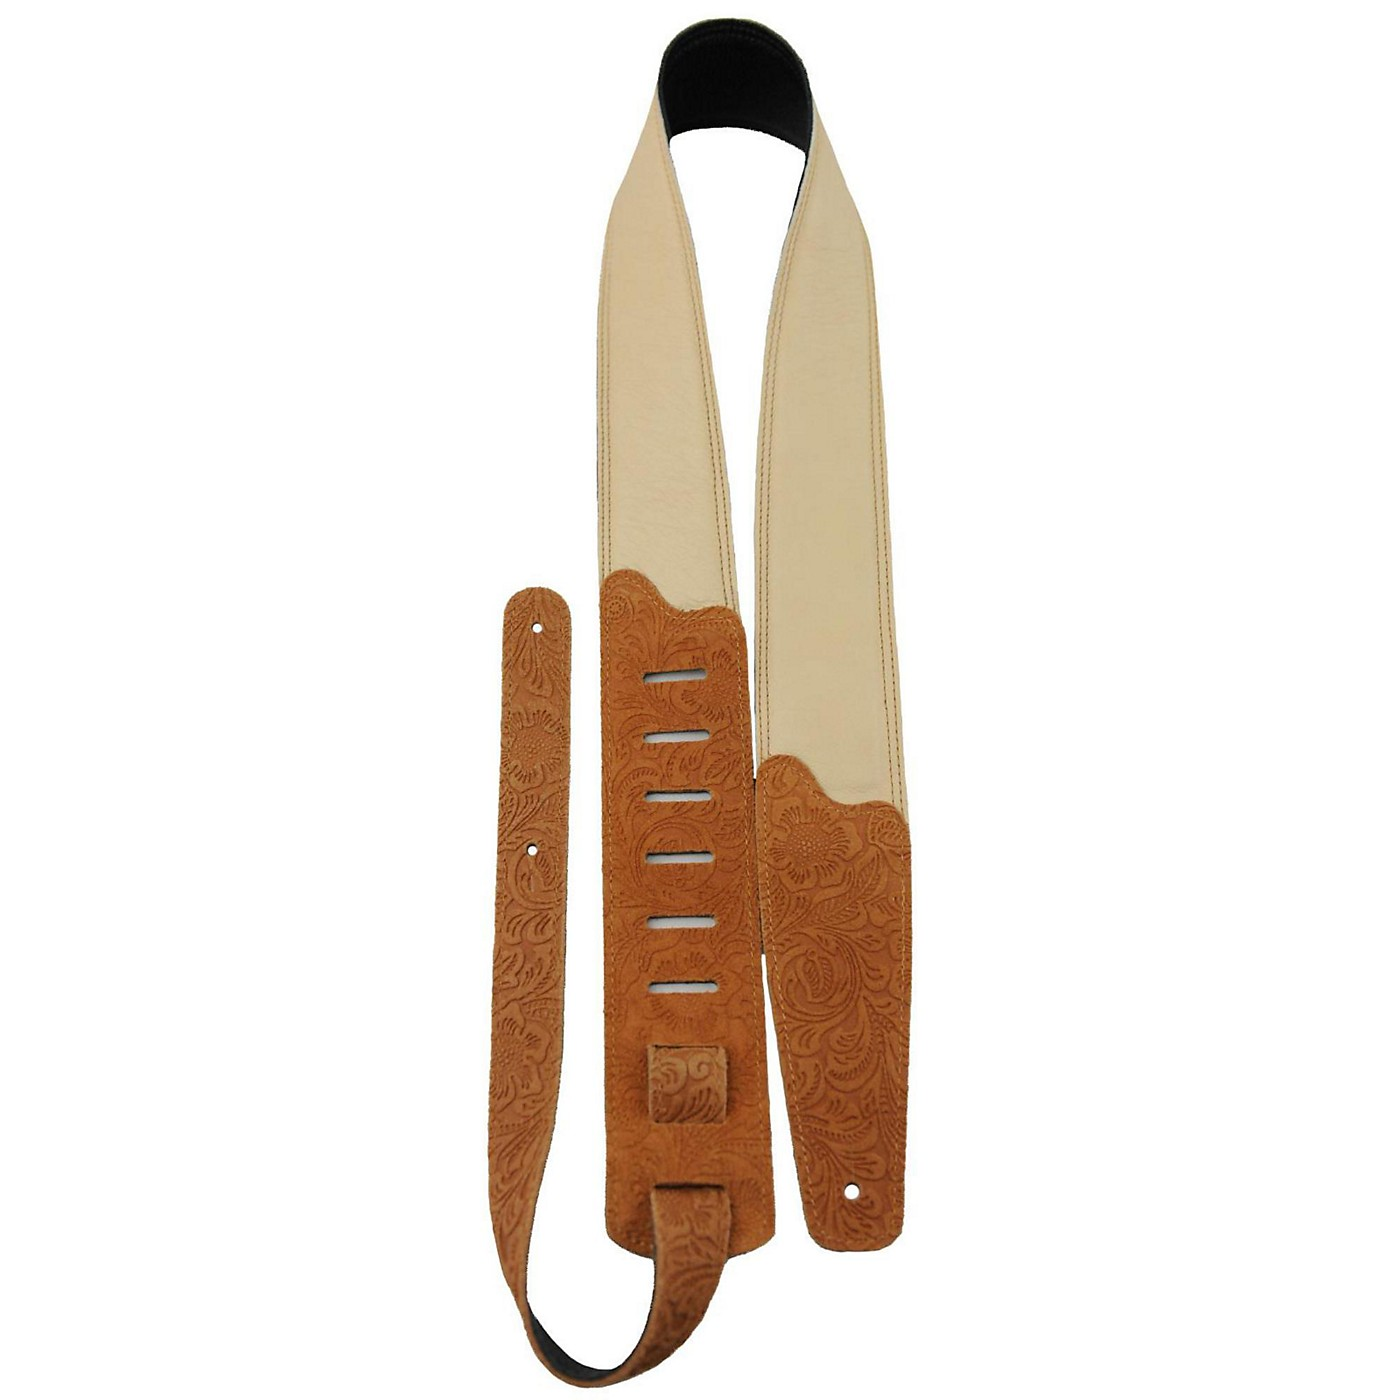 Perri's Soft Garment Leather Padded Embossed Floral Pattern Guitar Strap thumbnail